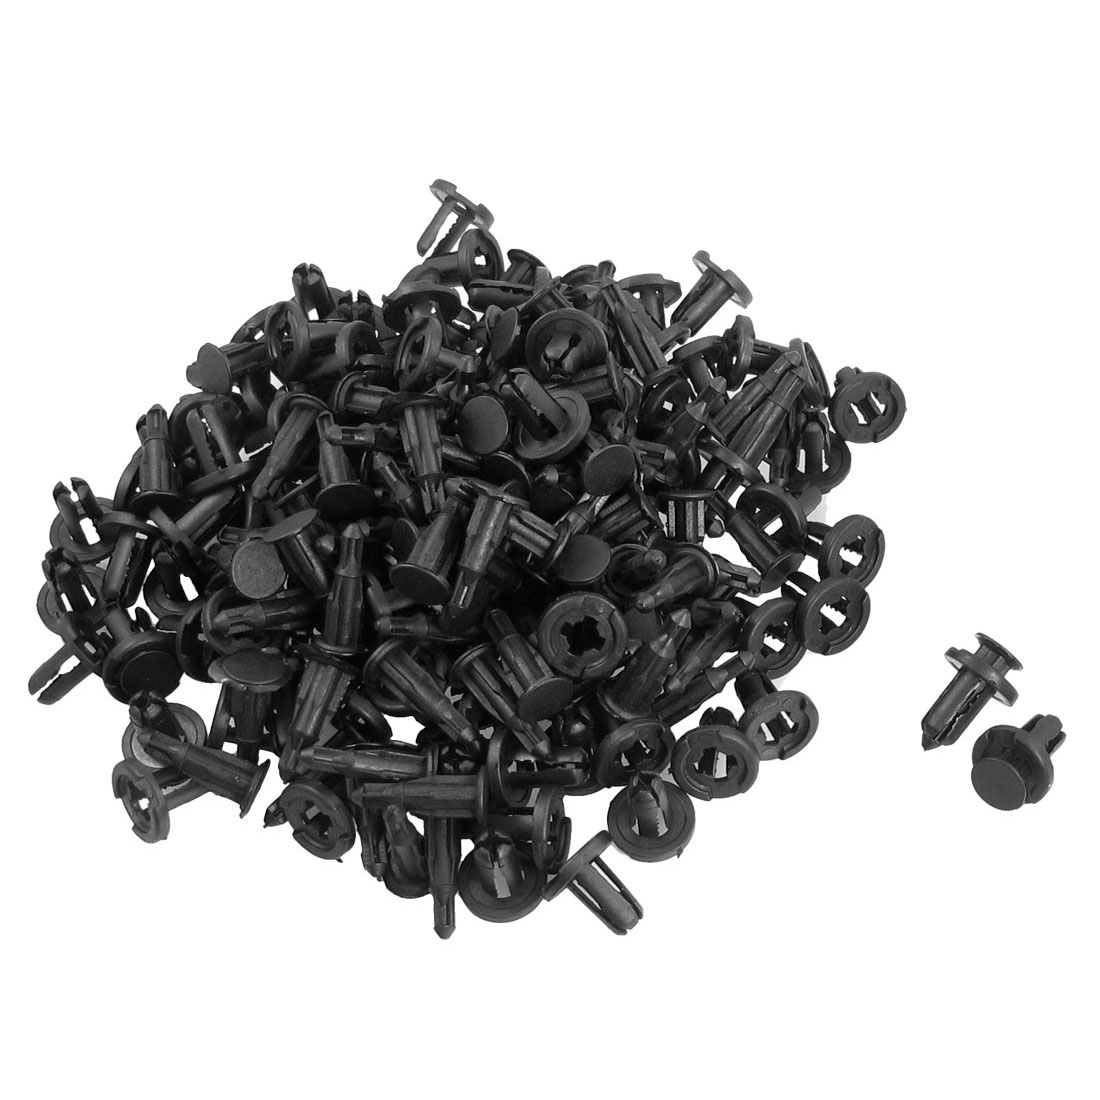 100 Pcs Plastic Rivets Retainer Clip 20mmx23mmx10mm for Car Bumper Fender